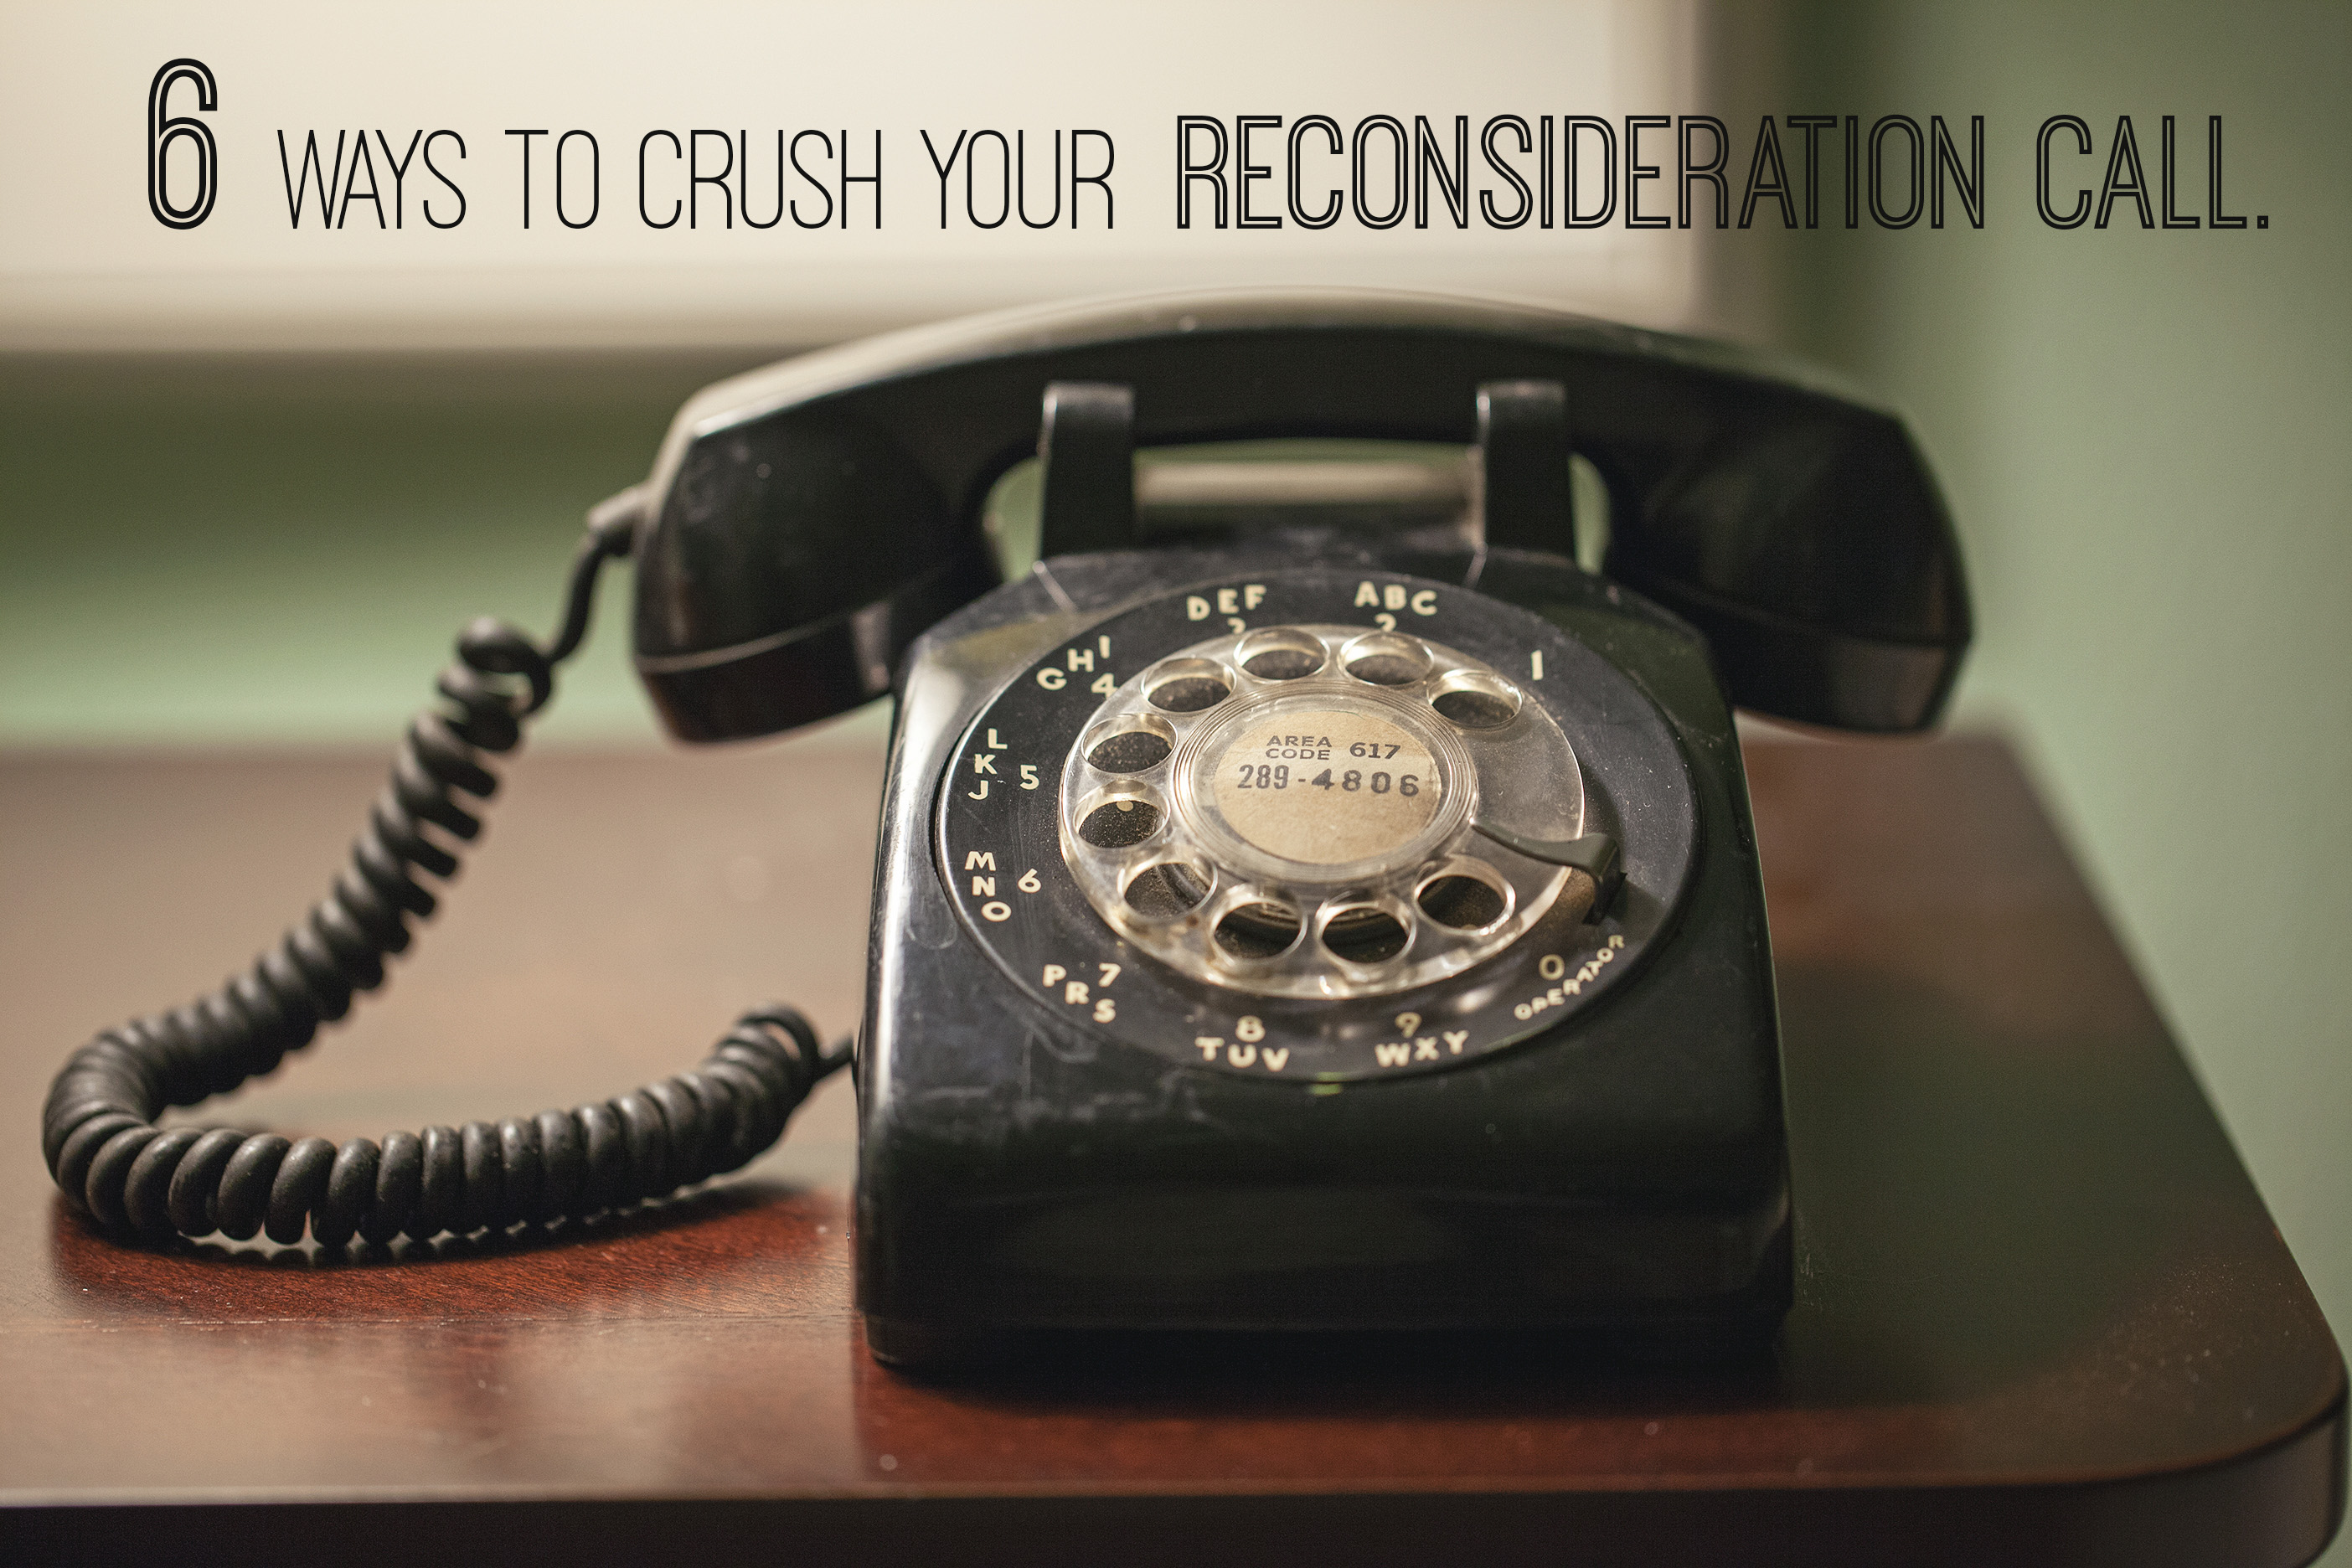 6-ways-reconsideration-call